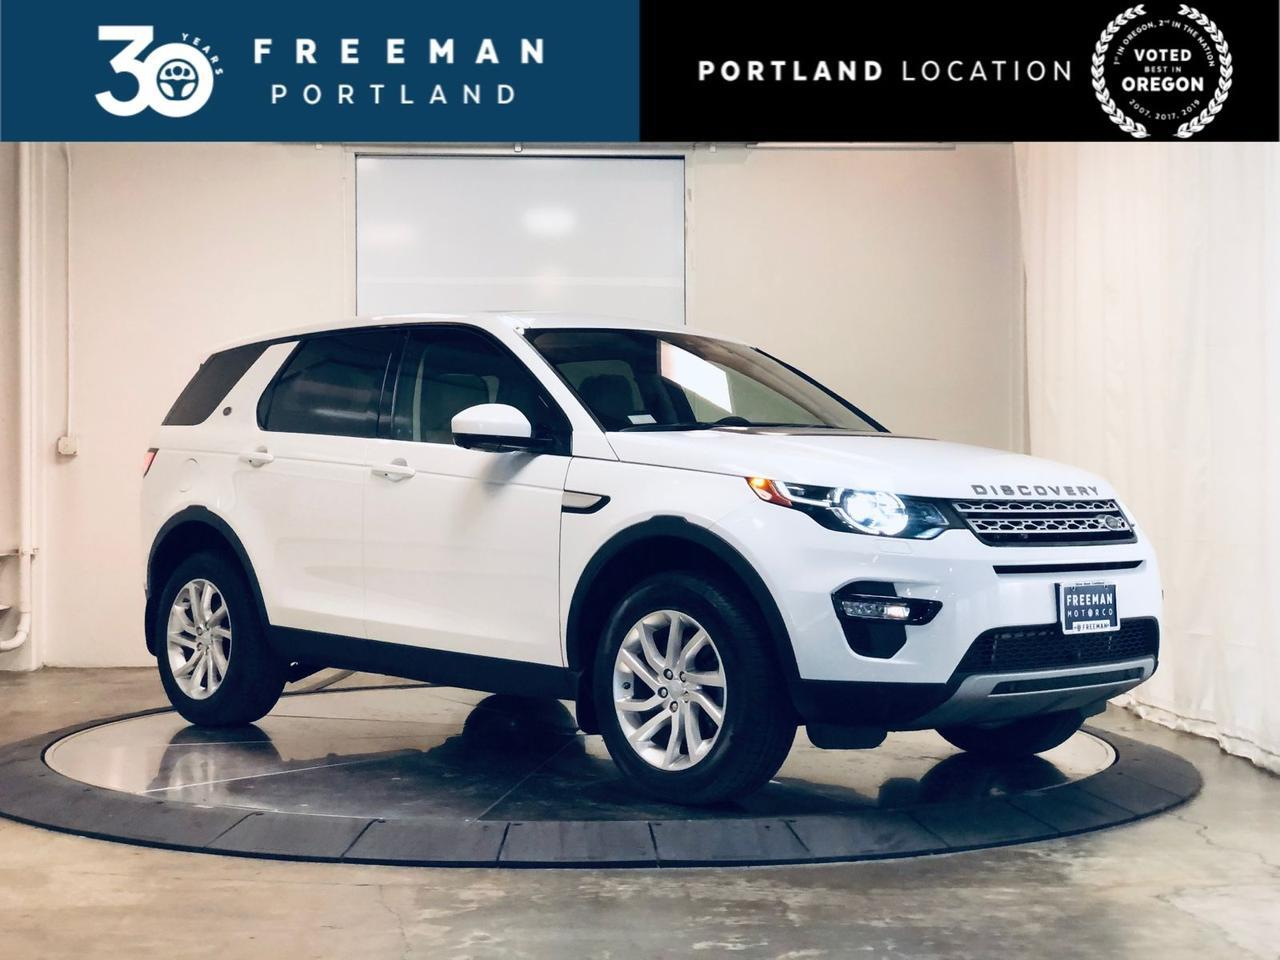 2017 Land Rover Discovery Sport HSE Htd/Ventilated Seats Blind Spot Assist Portland OR